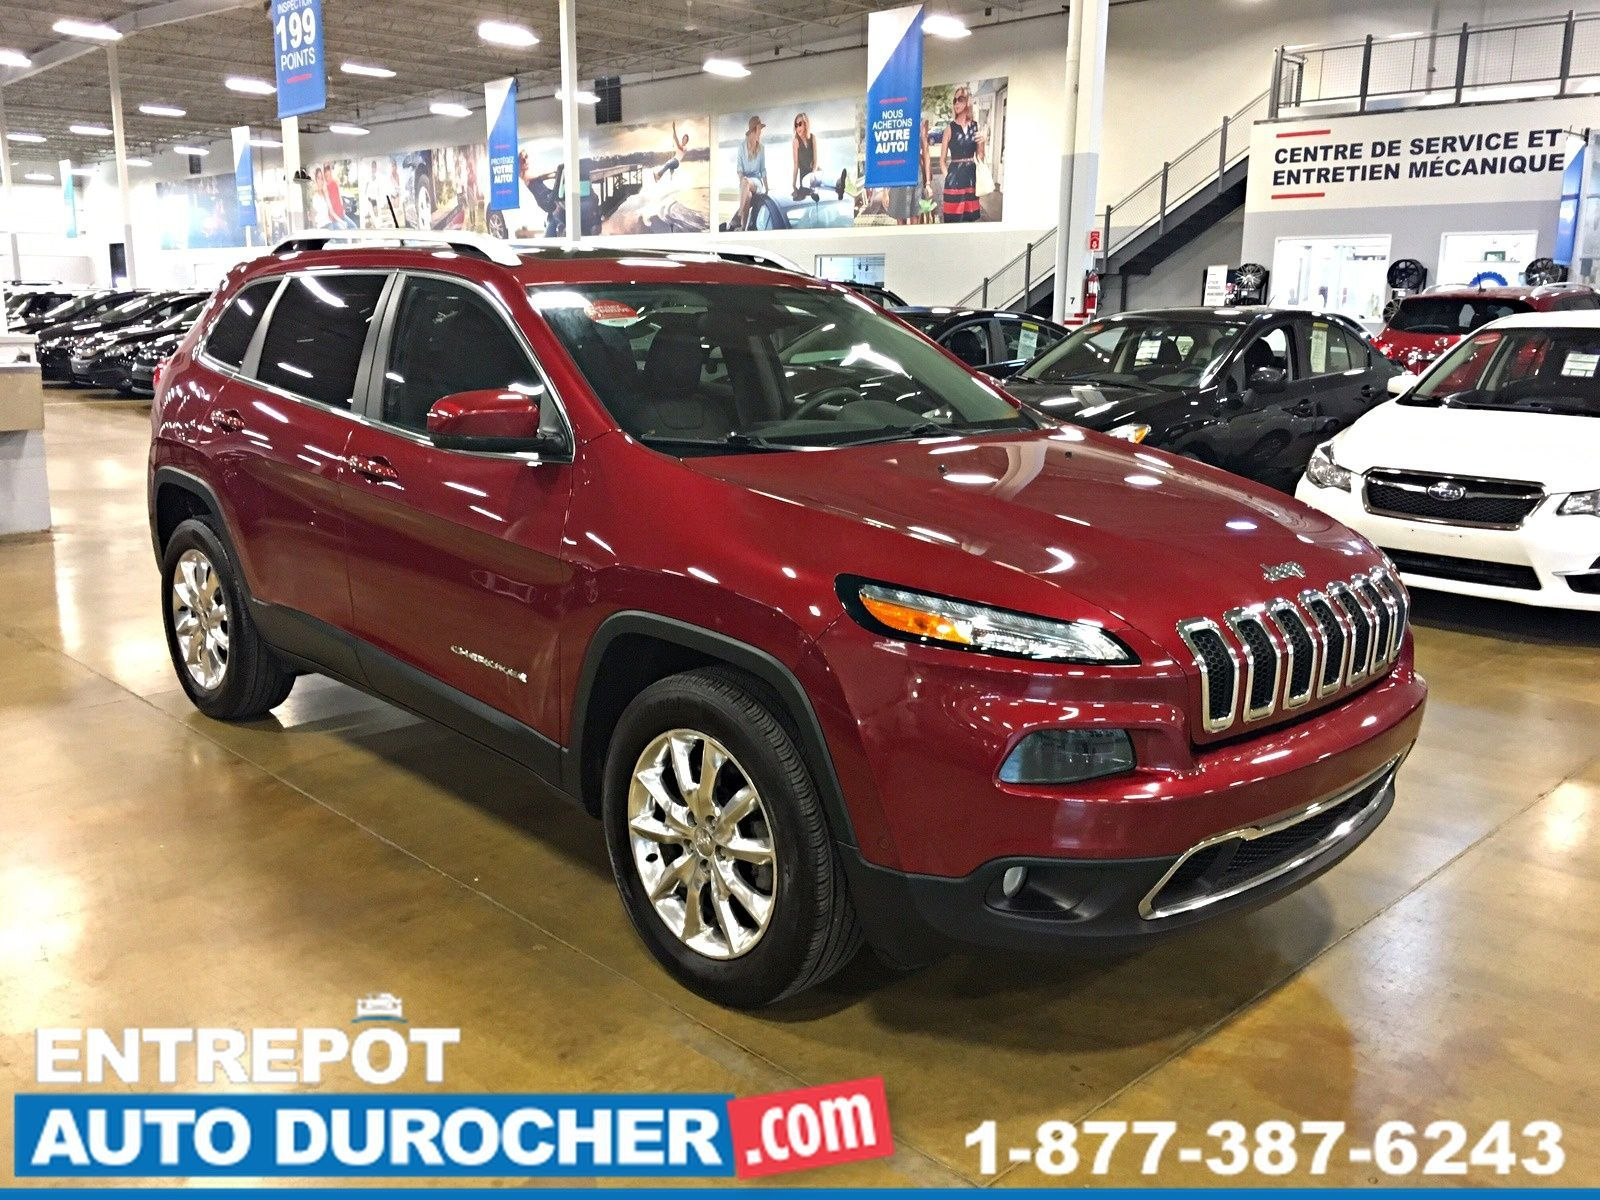 2015 2015 JEEP CHEROKE LIMITED TOIT PANORAMIQUE CUIR 4X4 NAVIGATION Jeep Cherokee Limited AWD CUIR TOIT